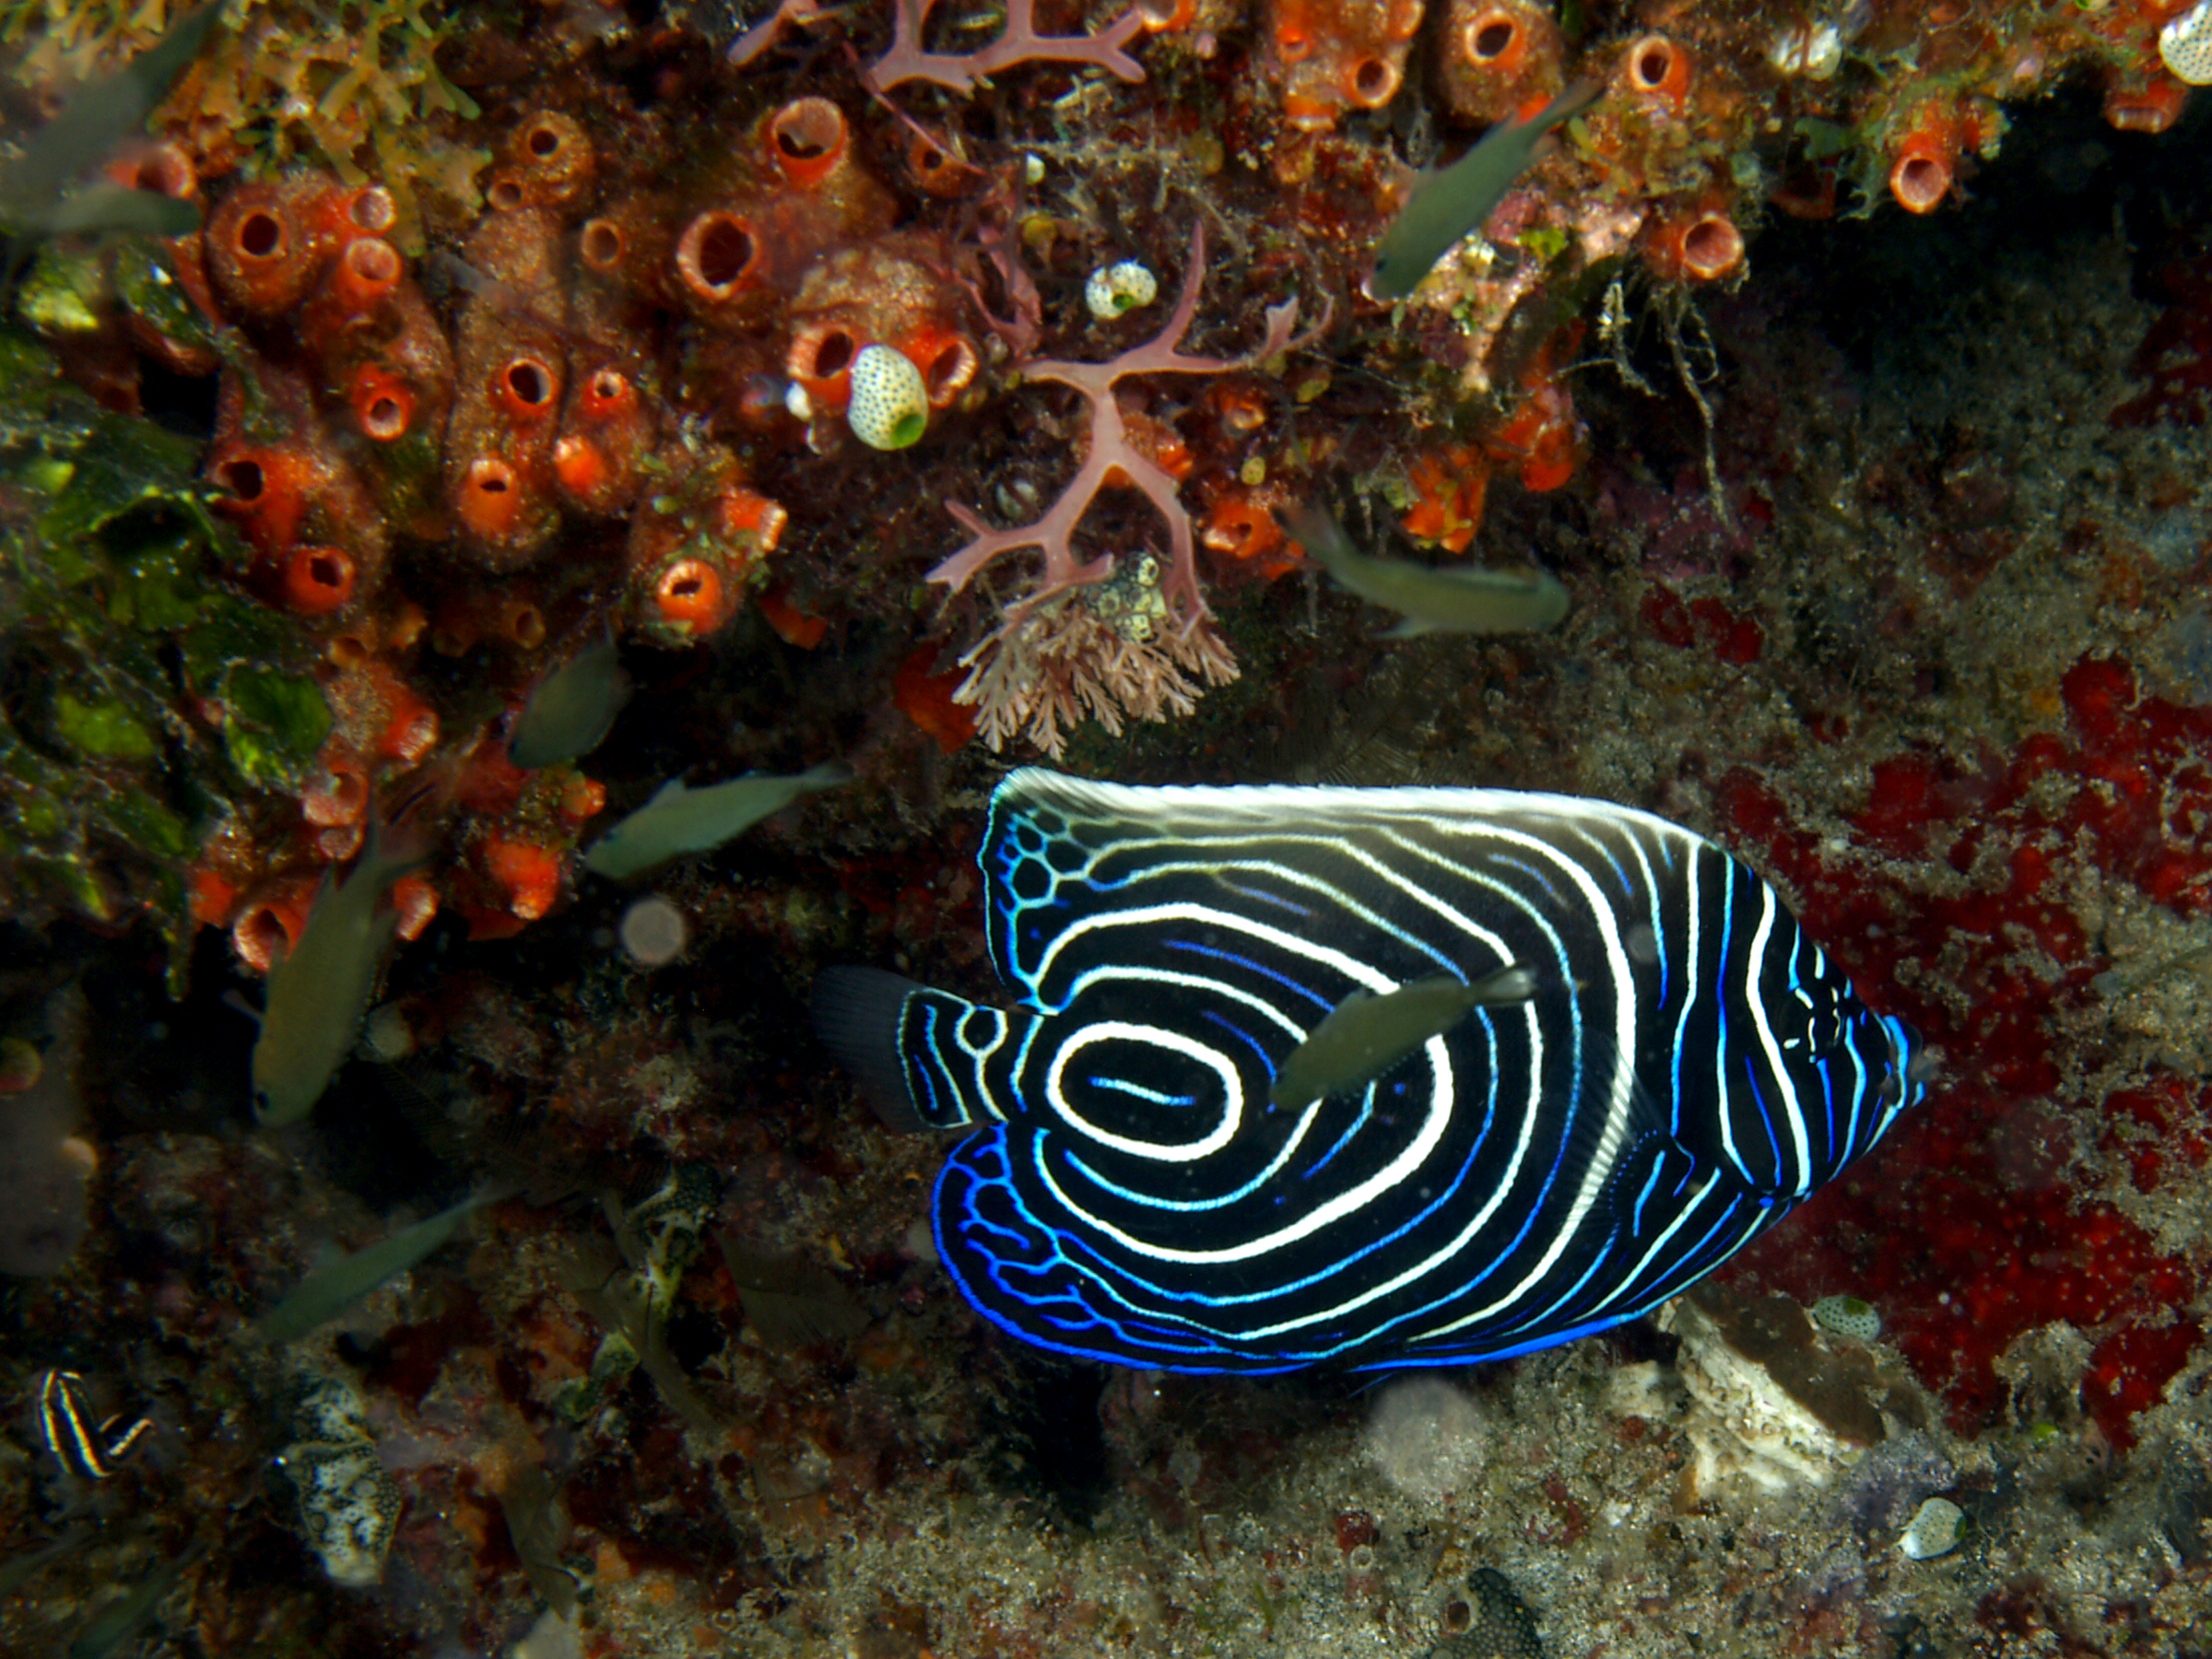 Juvenile emperor angelfish - Photo by Nick Hobgood